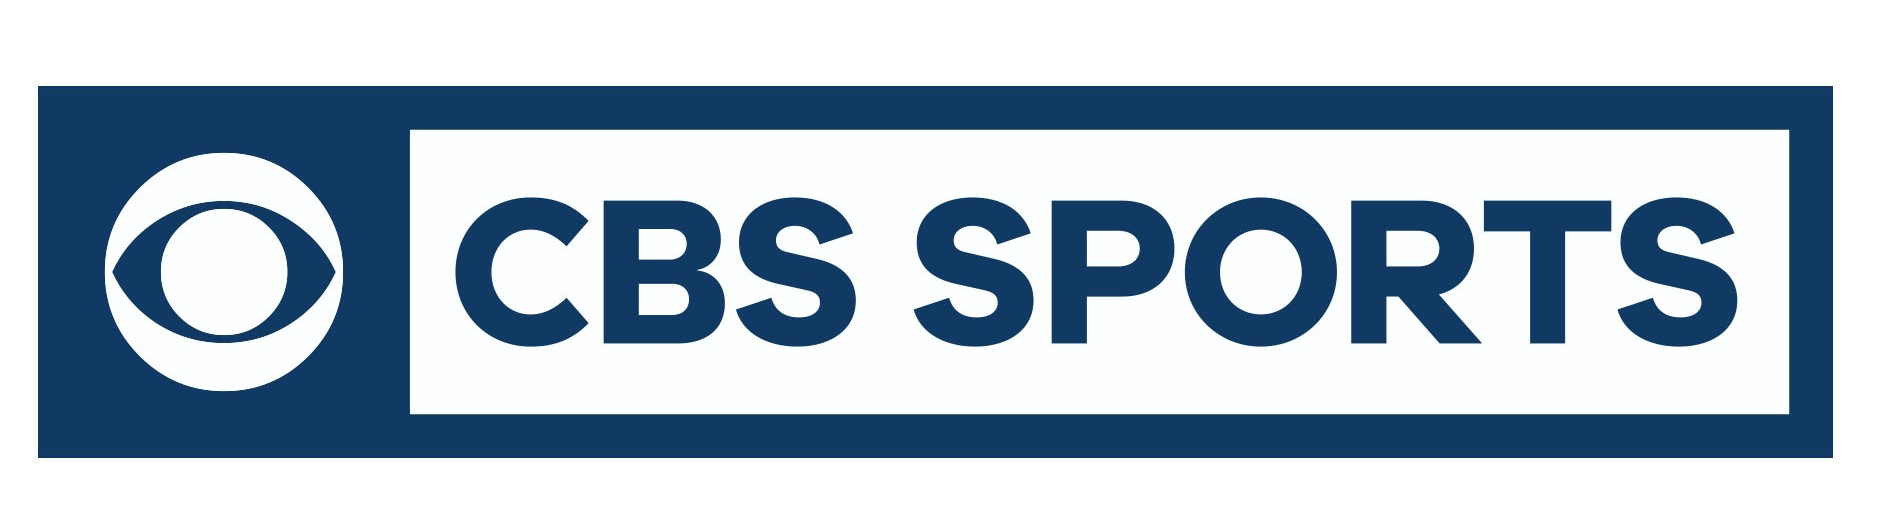 cbssports_new-e1452628675678.jpg